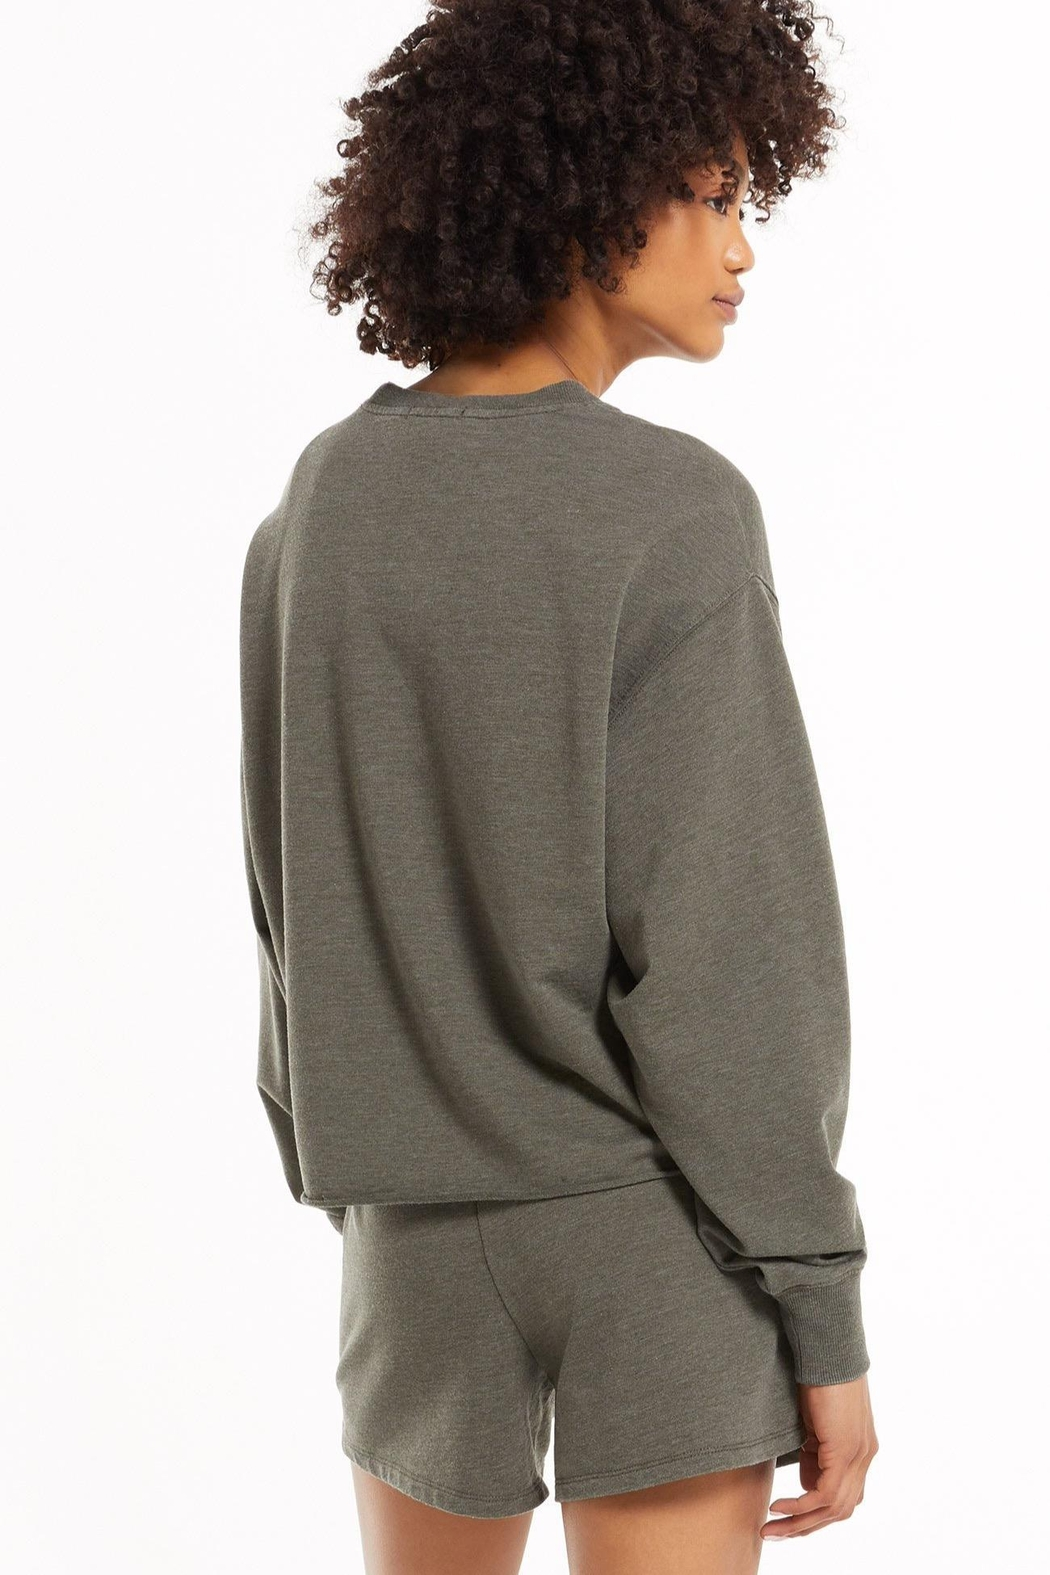 z supply Claire Boxy Sweatshirt - Seaweed - Front Full Image